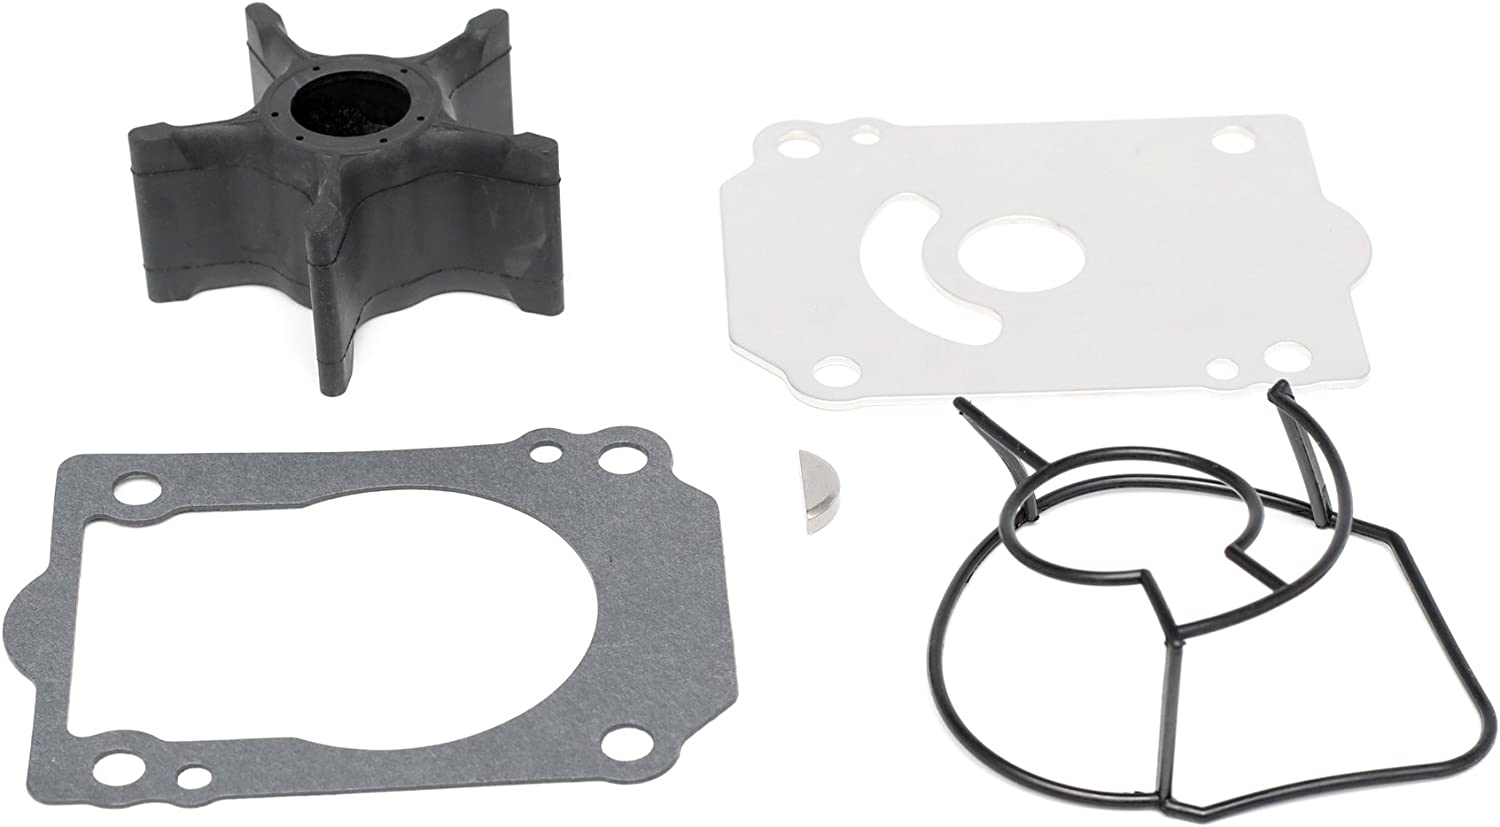 Full Power Plus Water Pump Impeller Kit Replacement For Suzuki DF200 DF225 DF250 17400-93J02